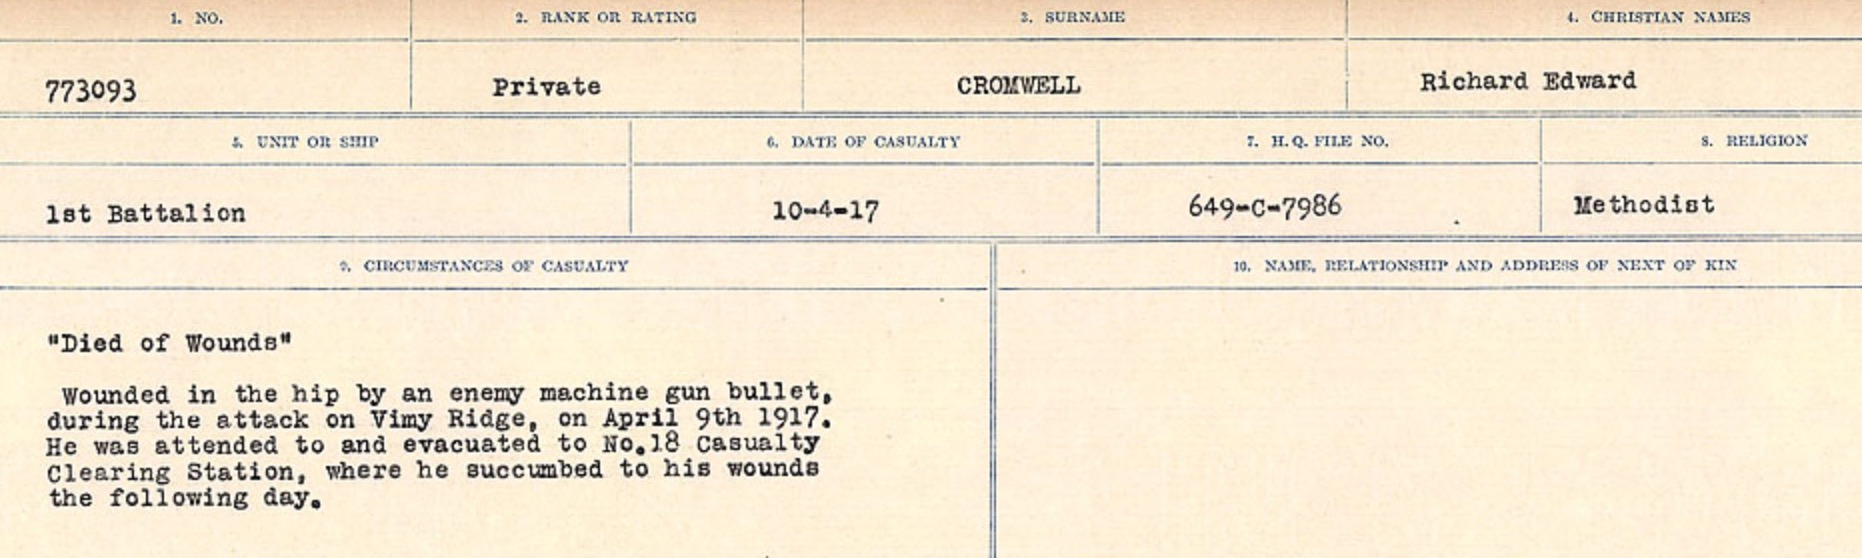 Circumstances of death registers – Source: Library and Archives Canada. CIRCUMSTANCES OF DEATH REGISTERS, FIRST WORLD WAR Surnames: CRABB TO CROSSLAND Microform Sequence 24; Volume Number 31829_B016733. Reference RG150, 1992-93/314, 168. Page 653 of 788.